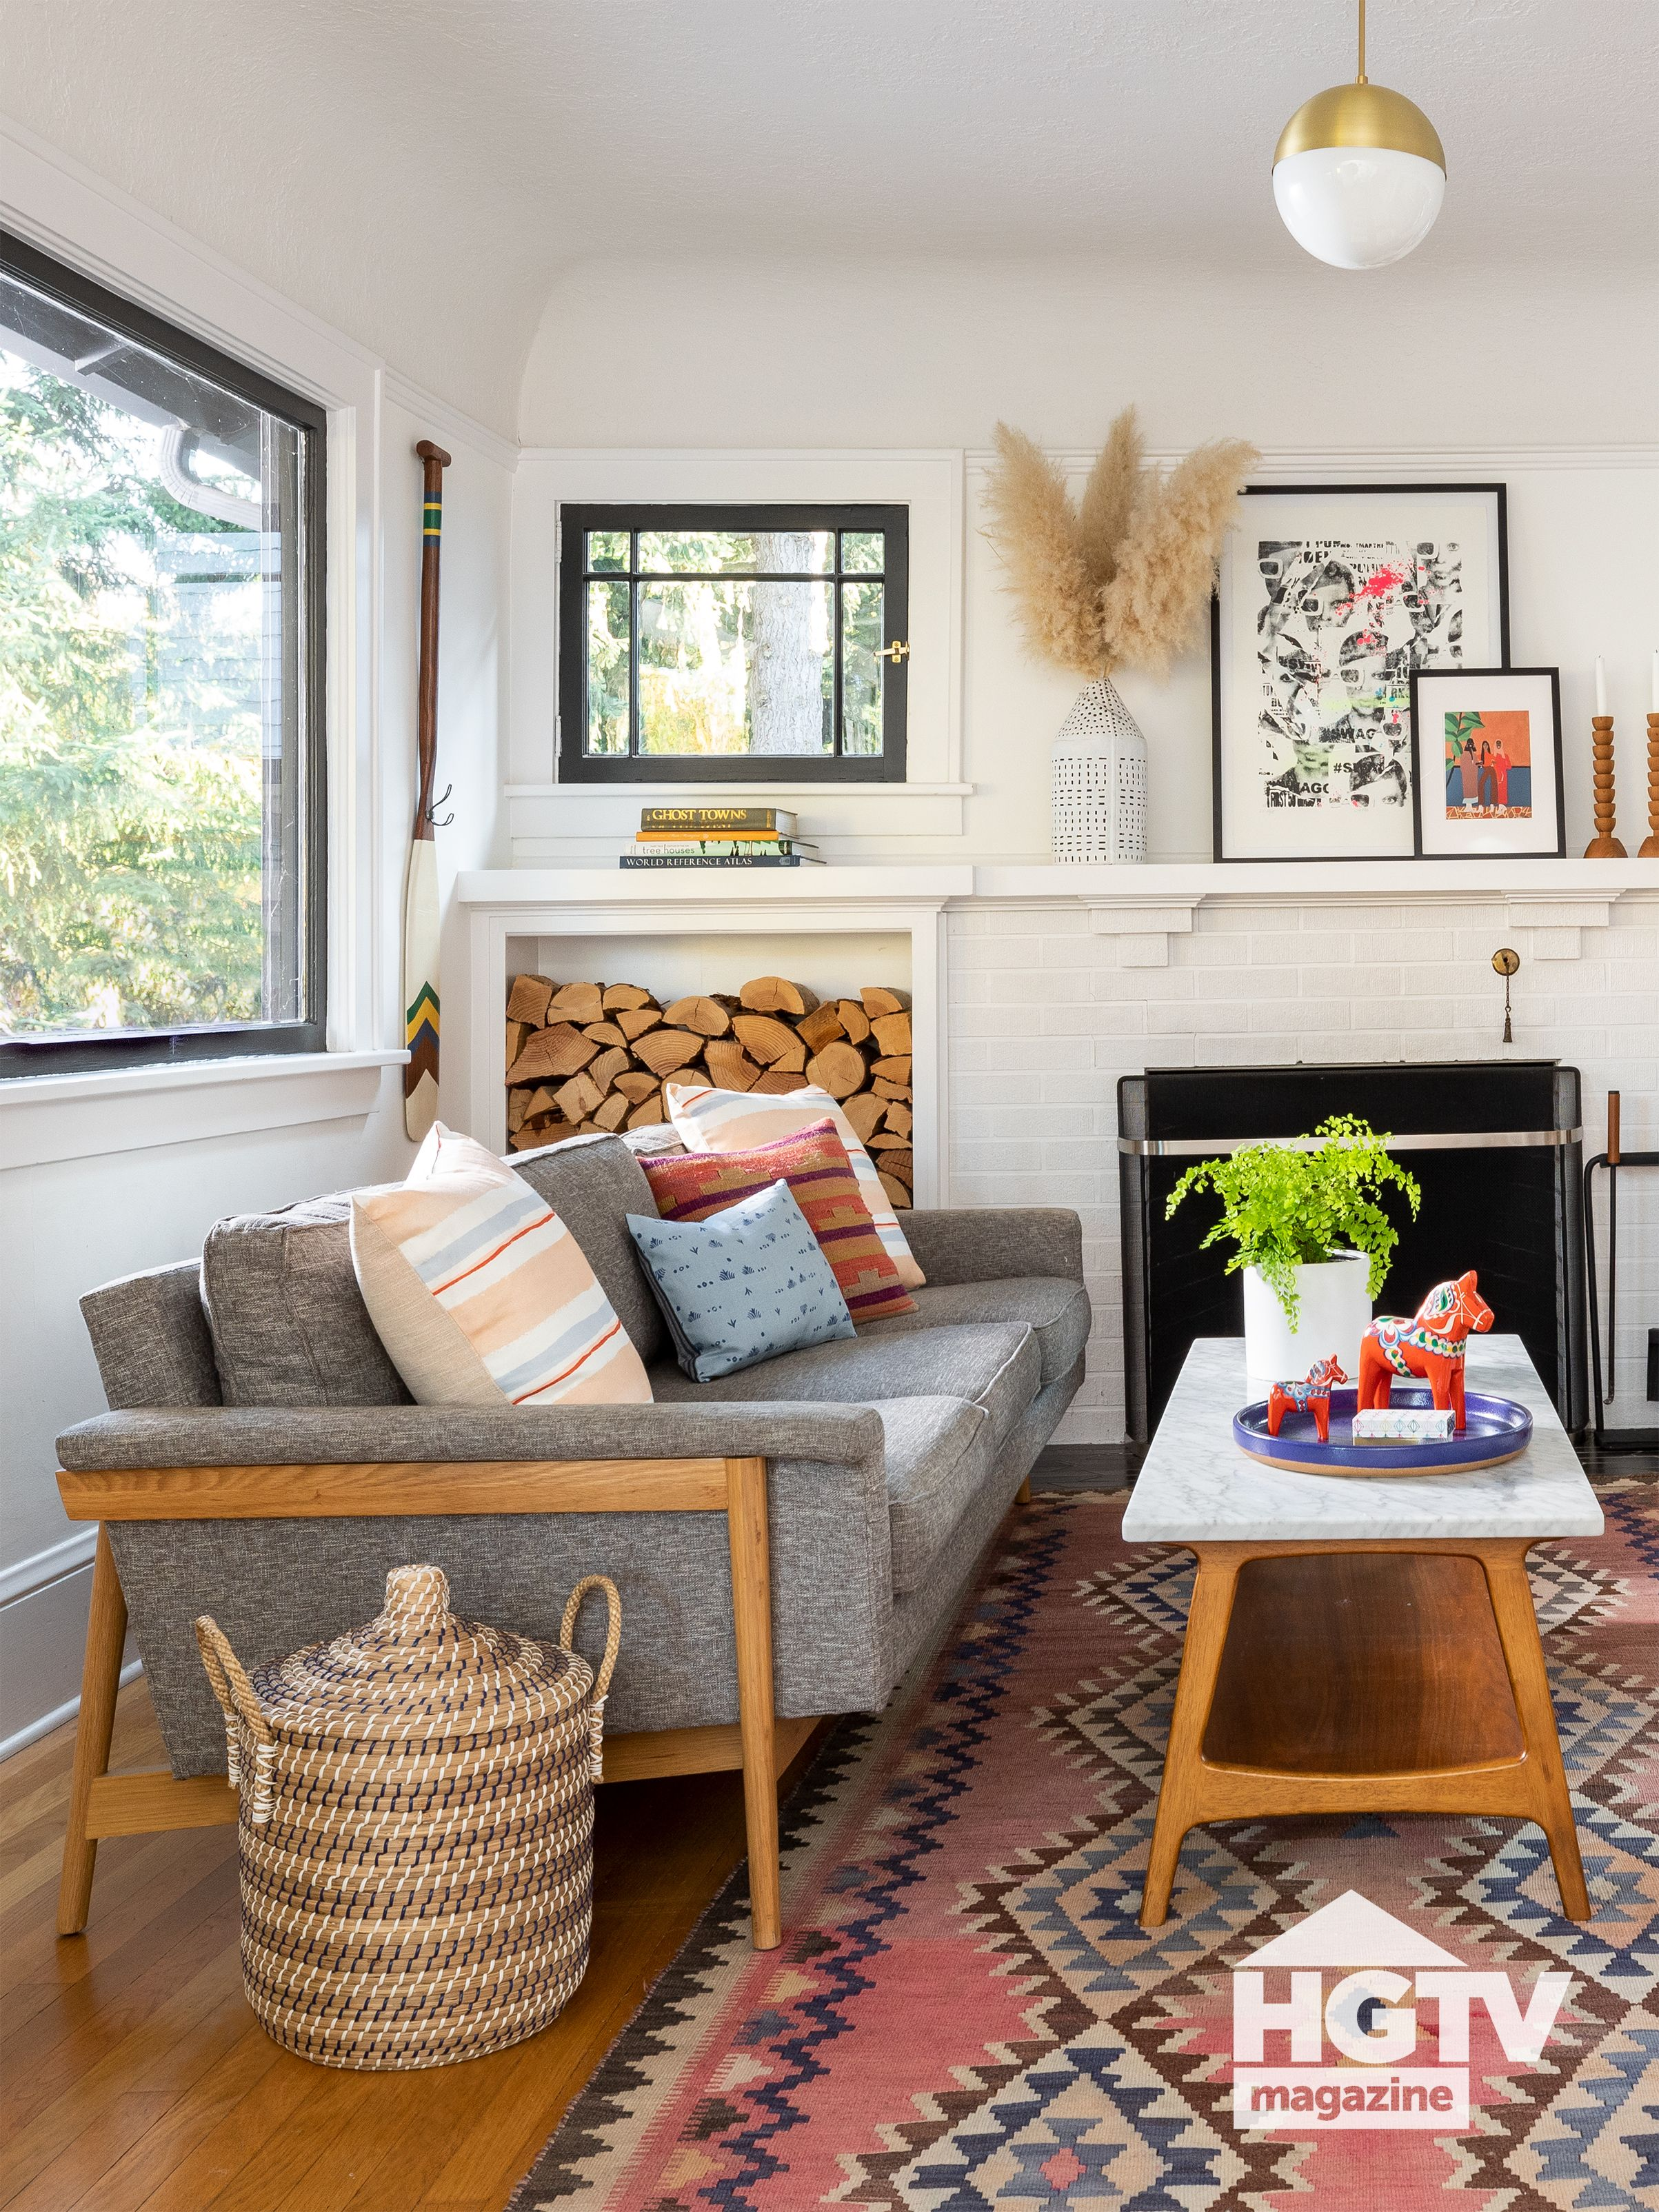 Furniture With Funky Wood Bases A Patterned Rug And Neutral